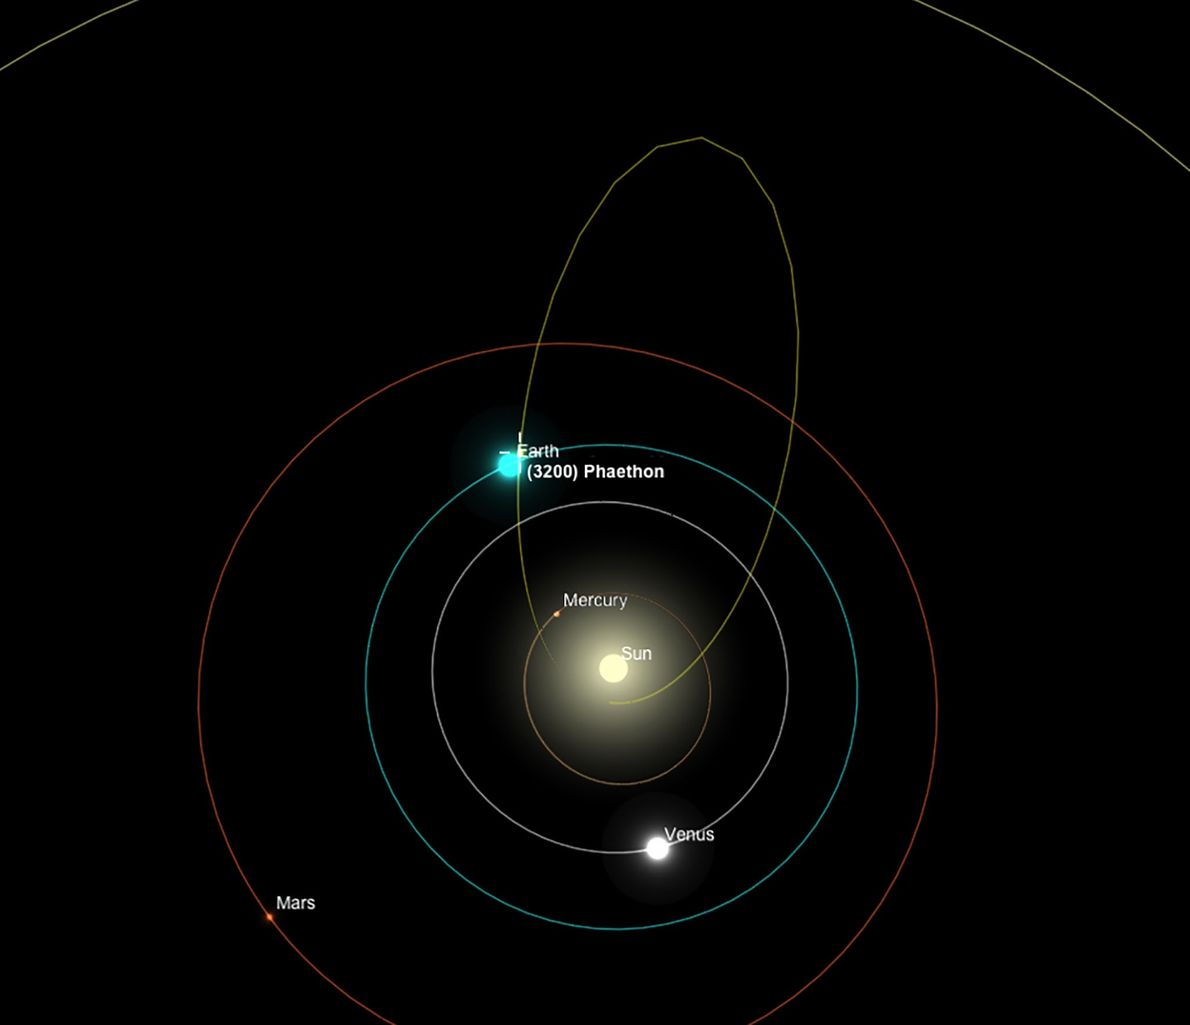 During its elongated orbit, 3200 Phaethon comes closer to the sun than any other known asteroid.